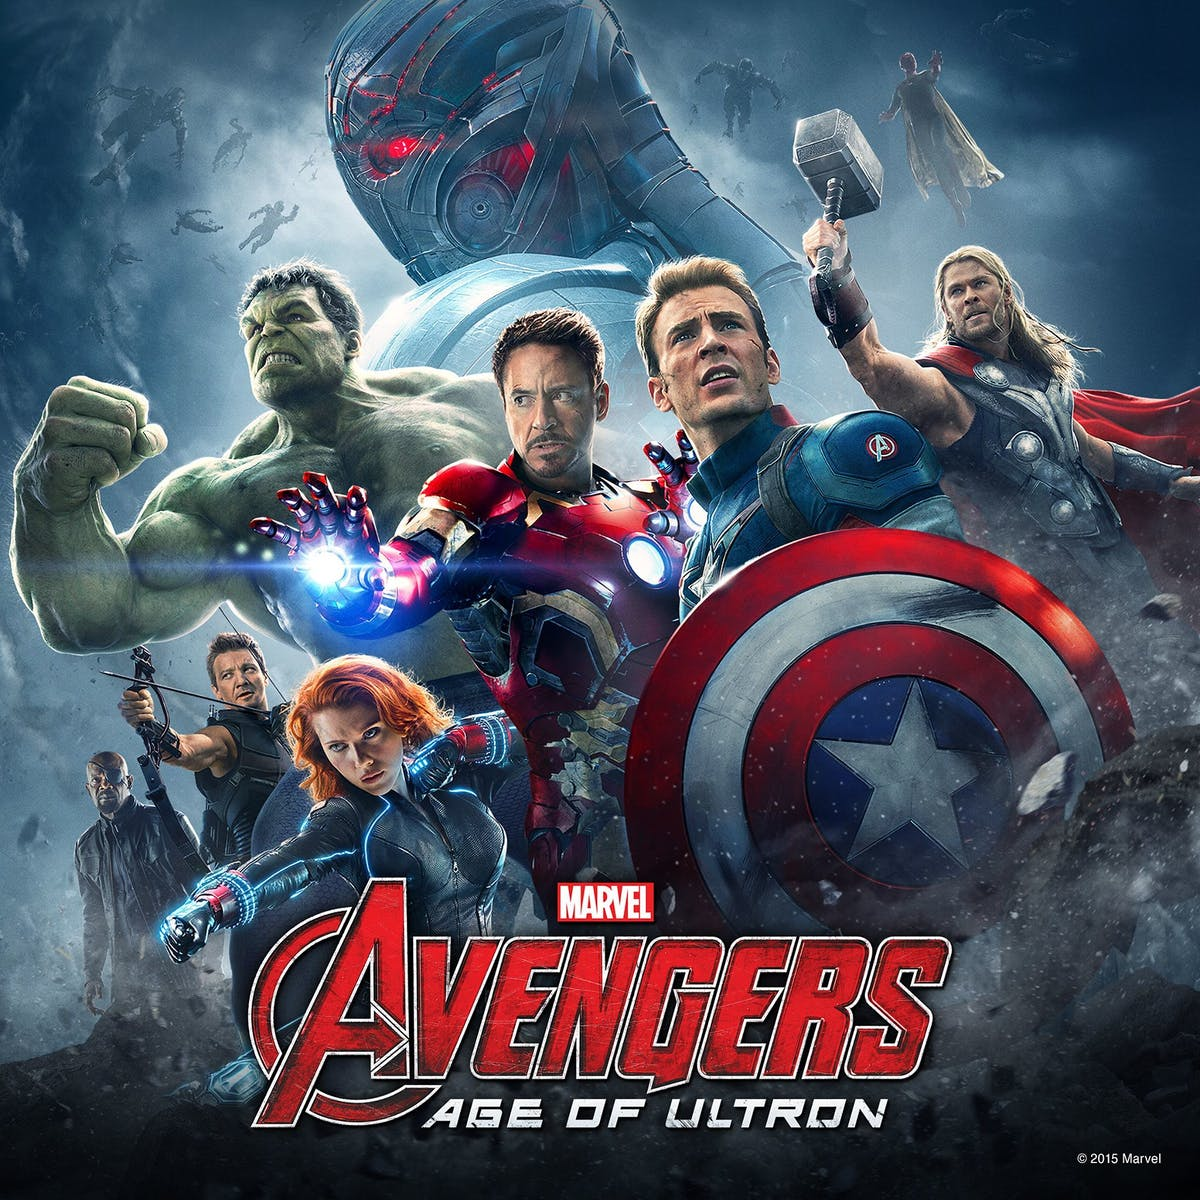 Who Should Play The Avengers in the Marvel Movies When The Avengers